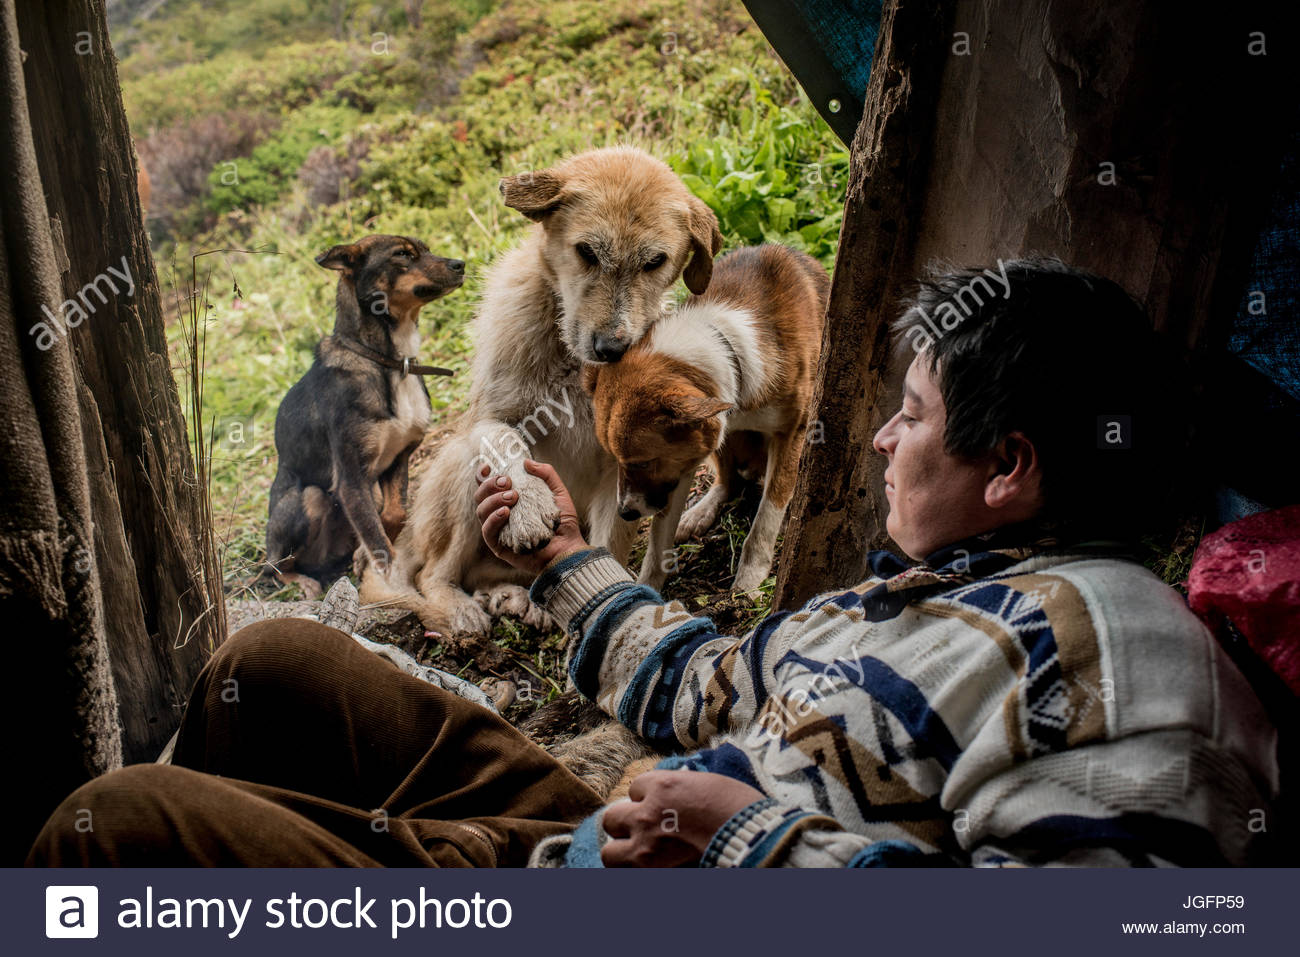 A bagualero, a cowboy who capture feral livestock, shakes hands with a working dog. - Stock Image